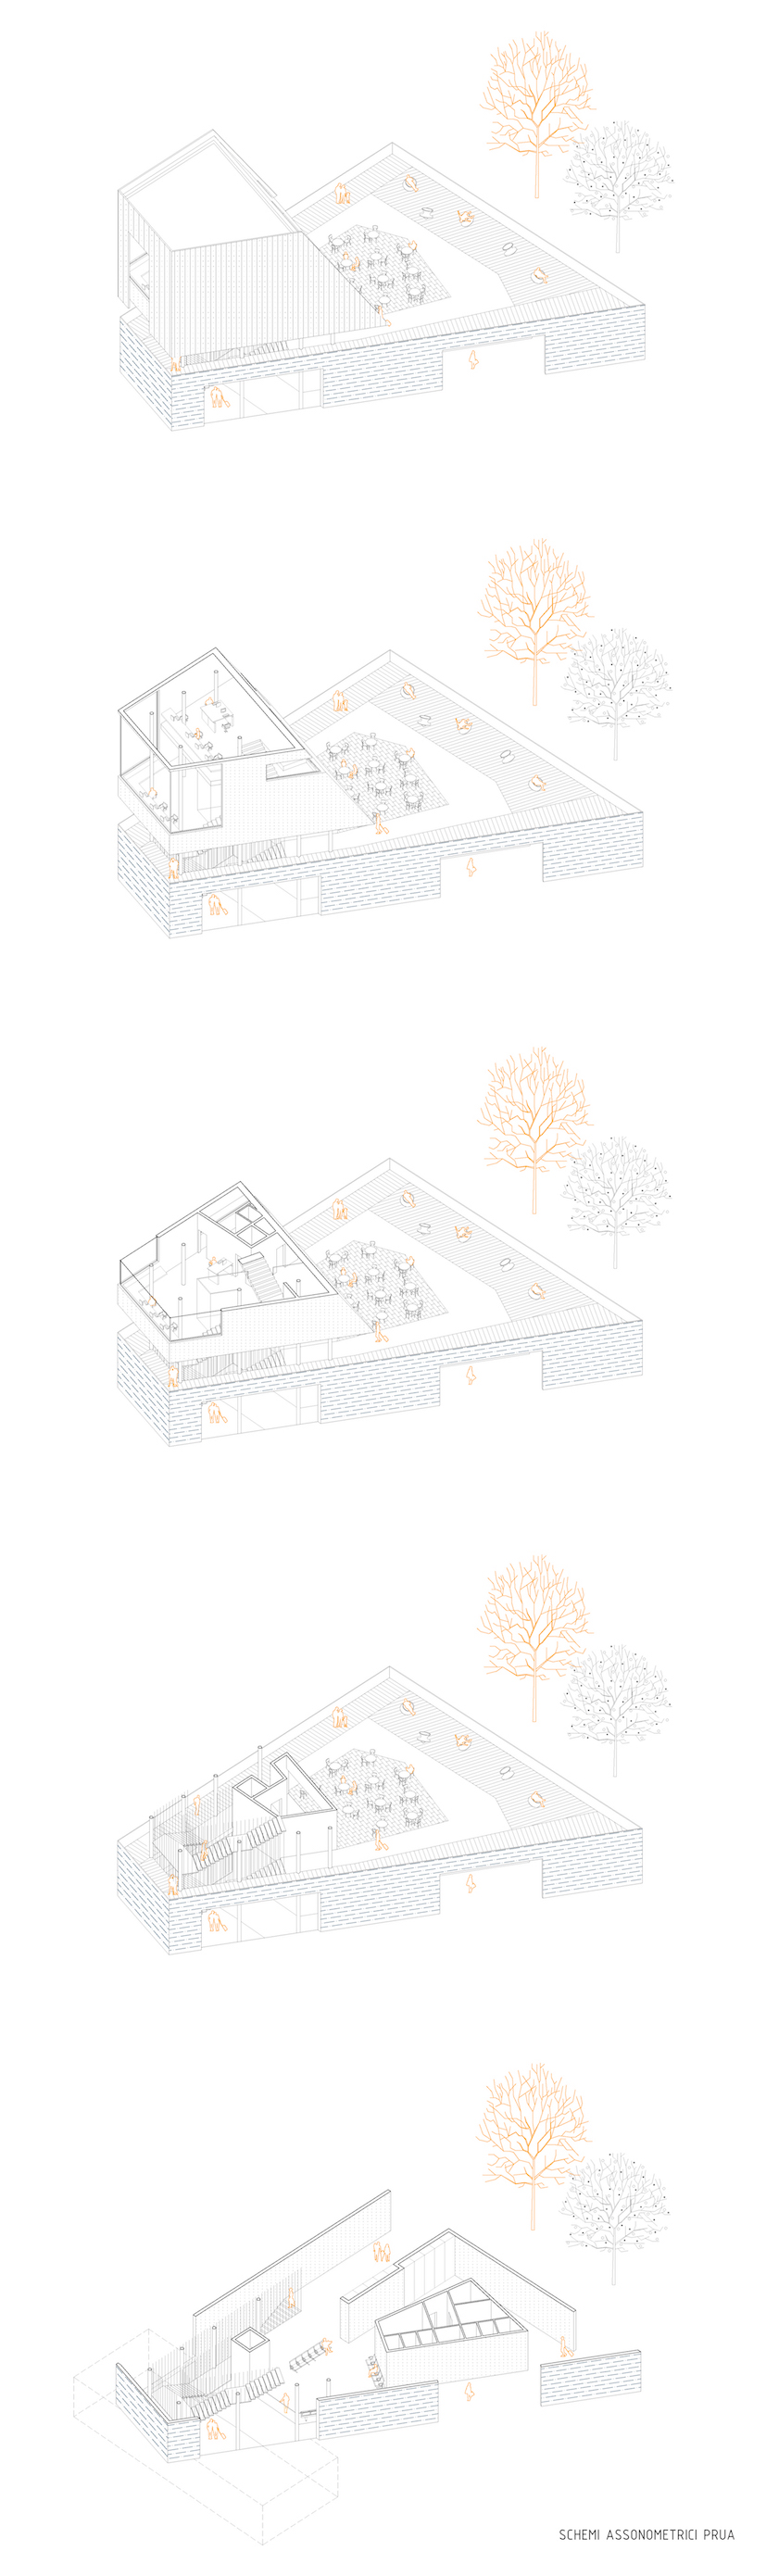 10_Axonometric composition of passangers building